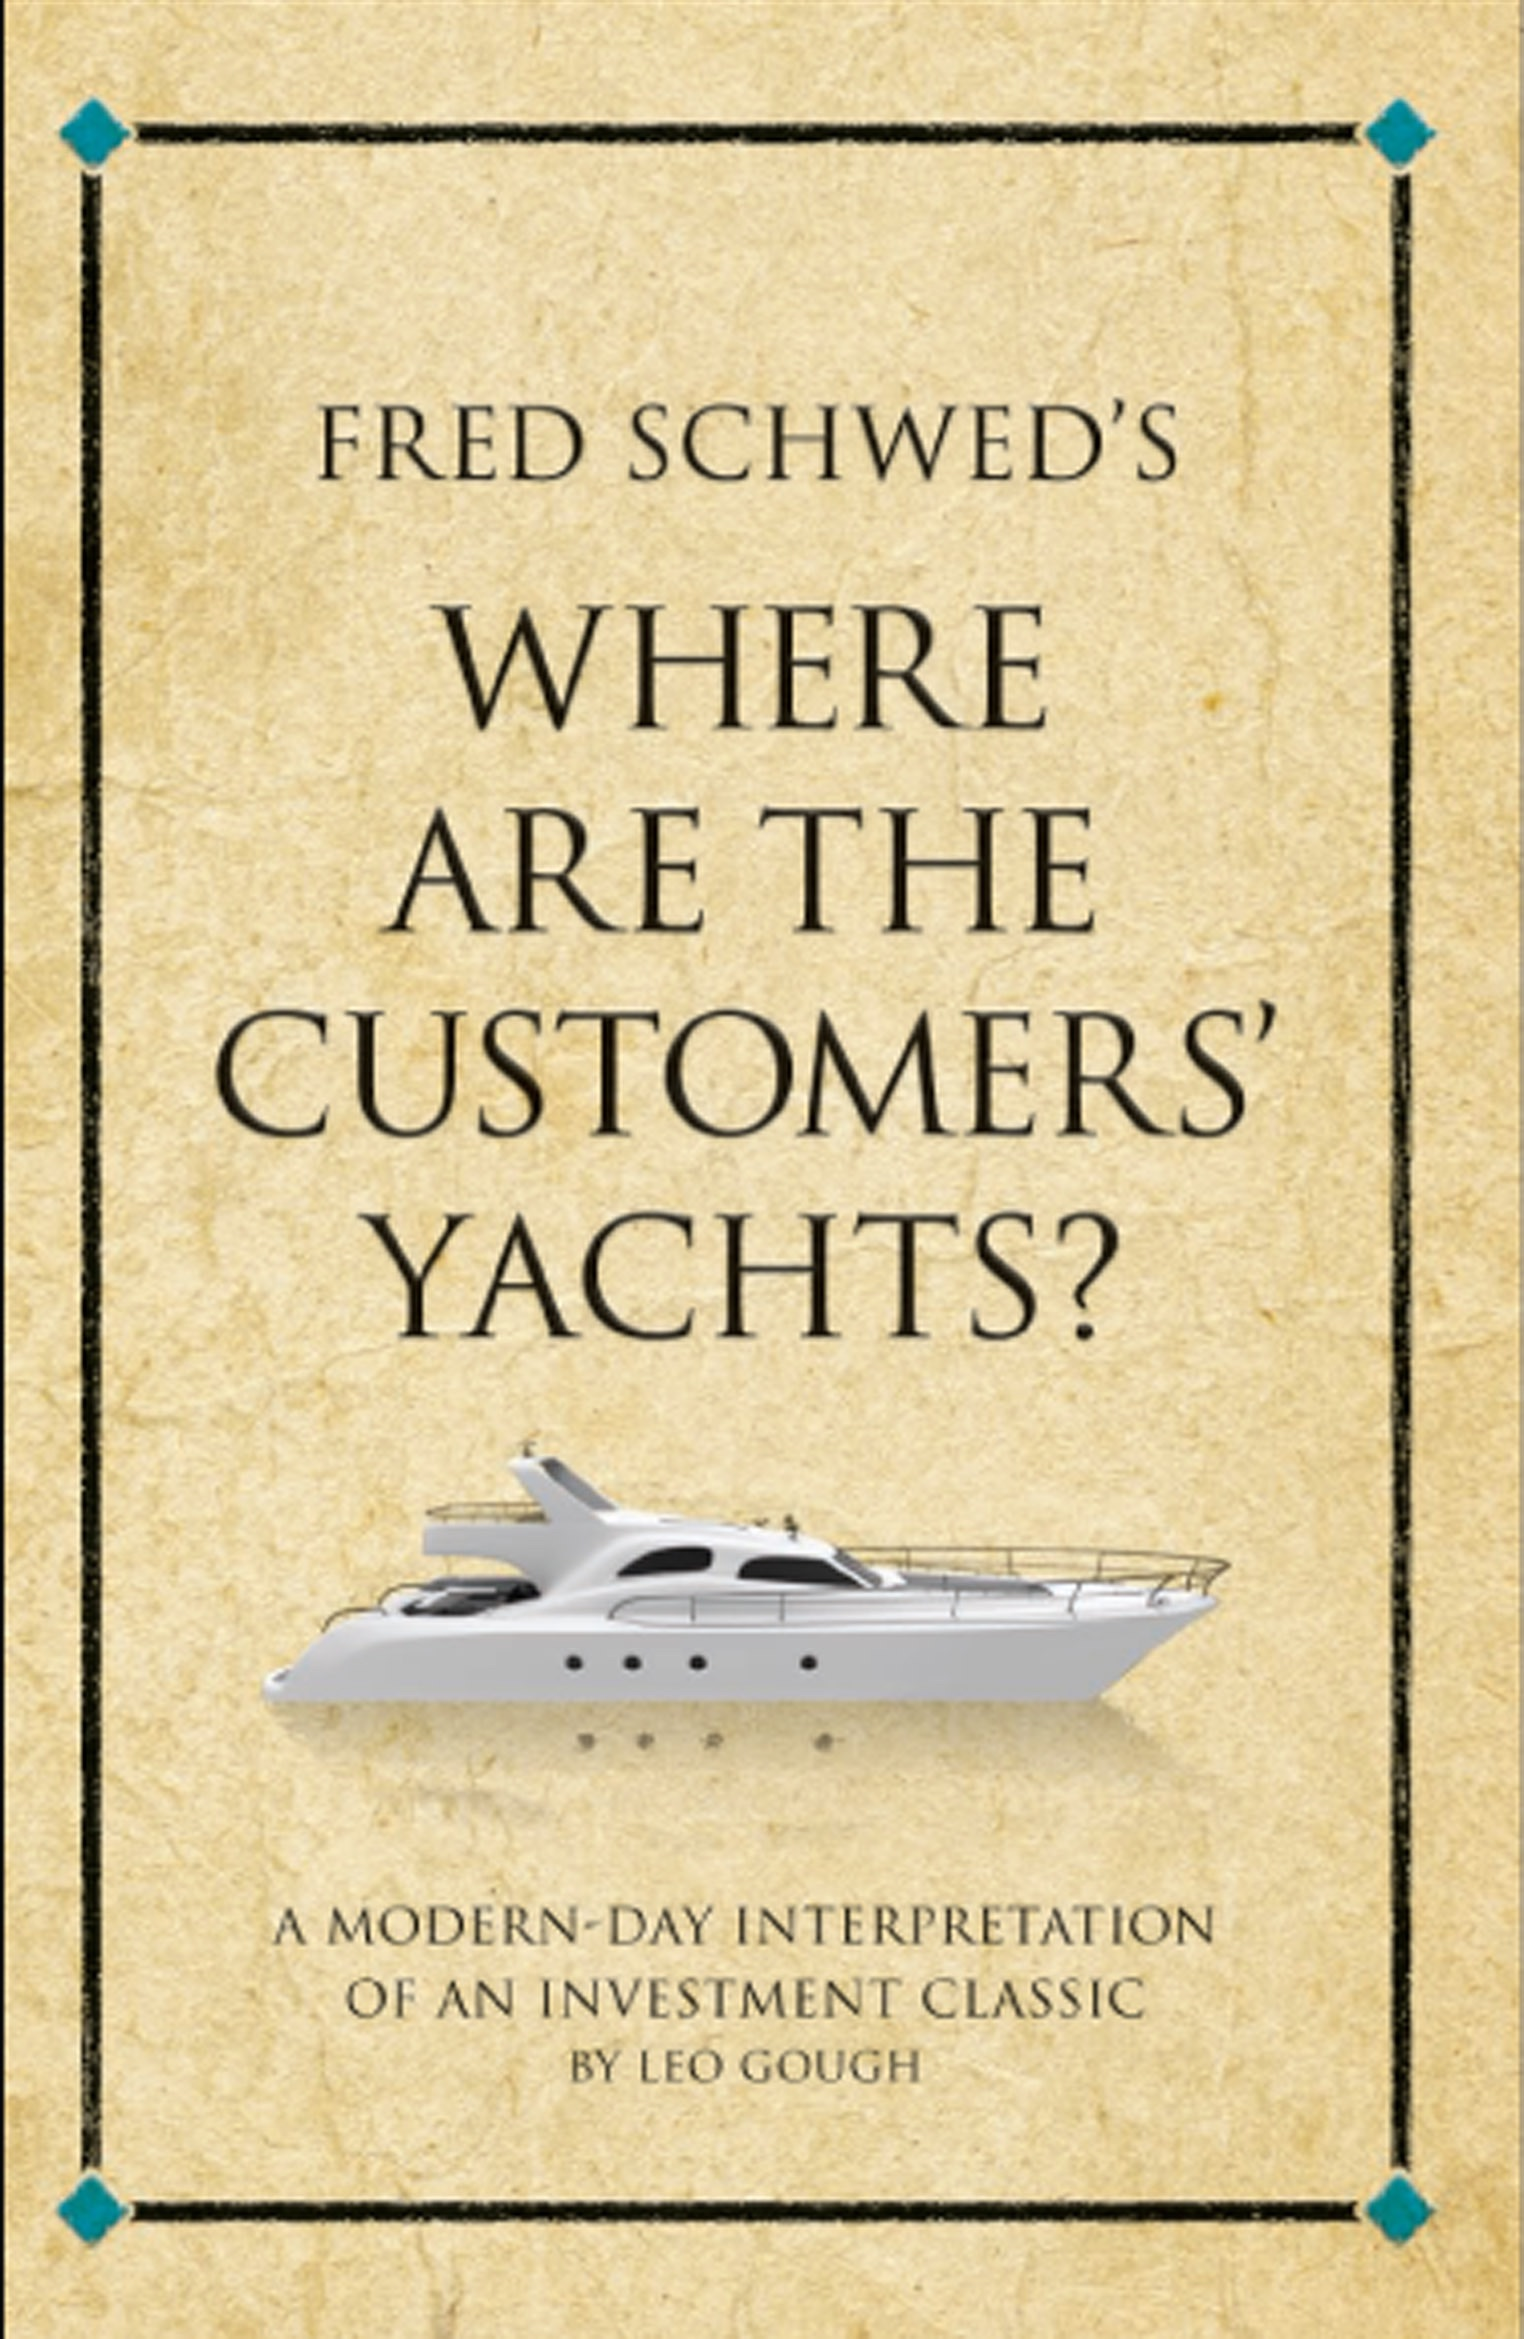 Book Cover of Where Are the Customers' Yachts?